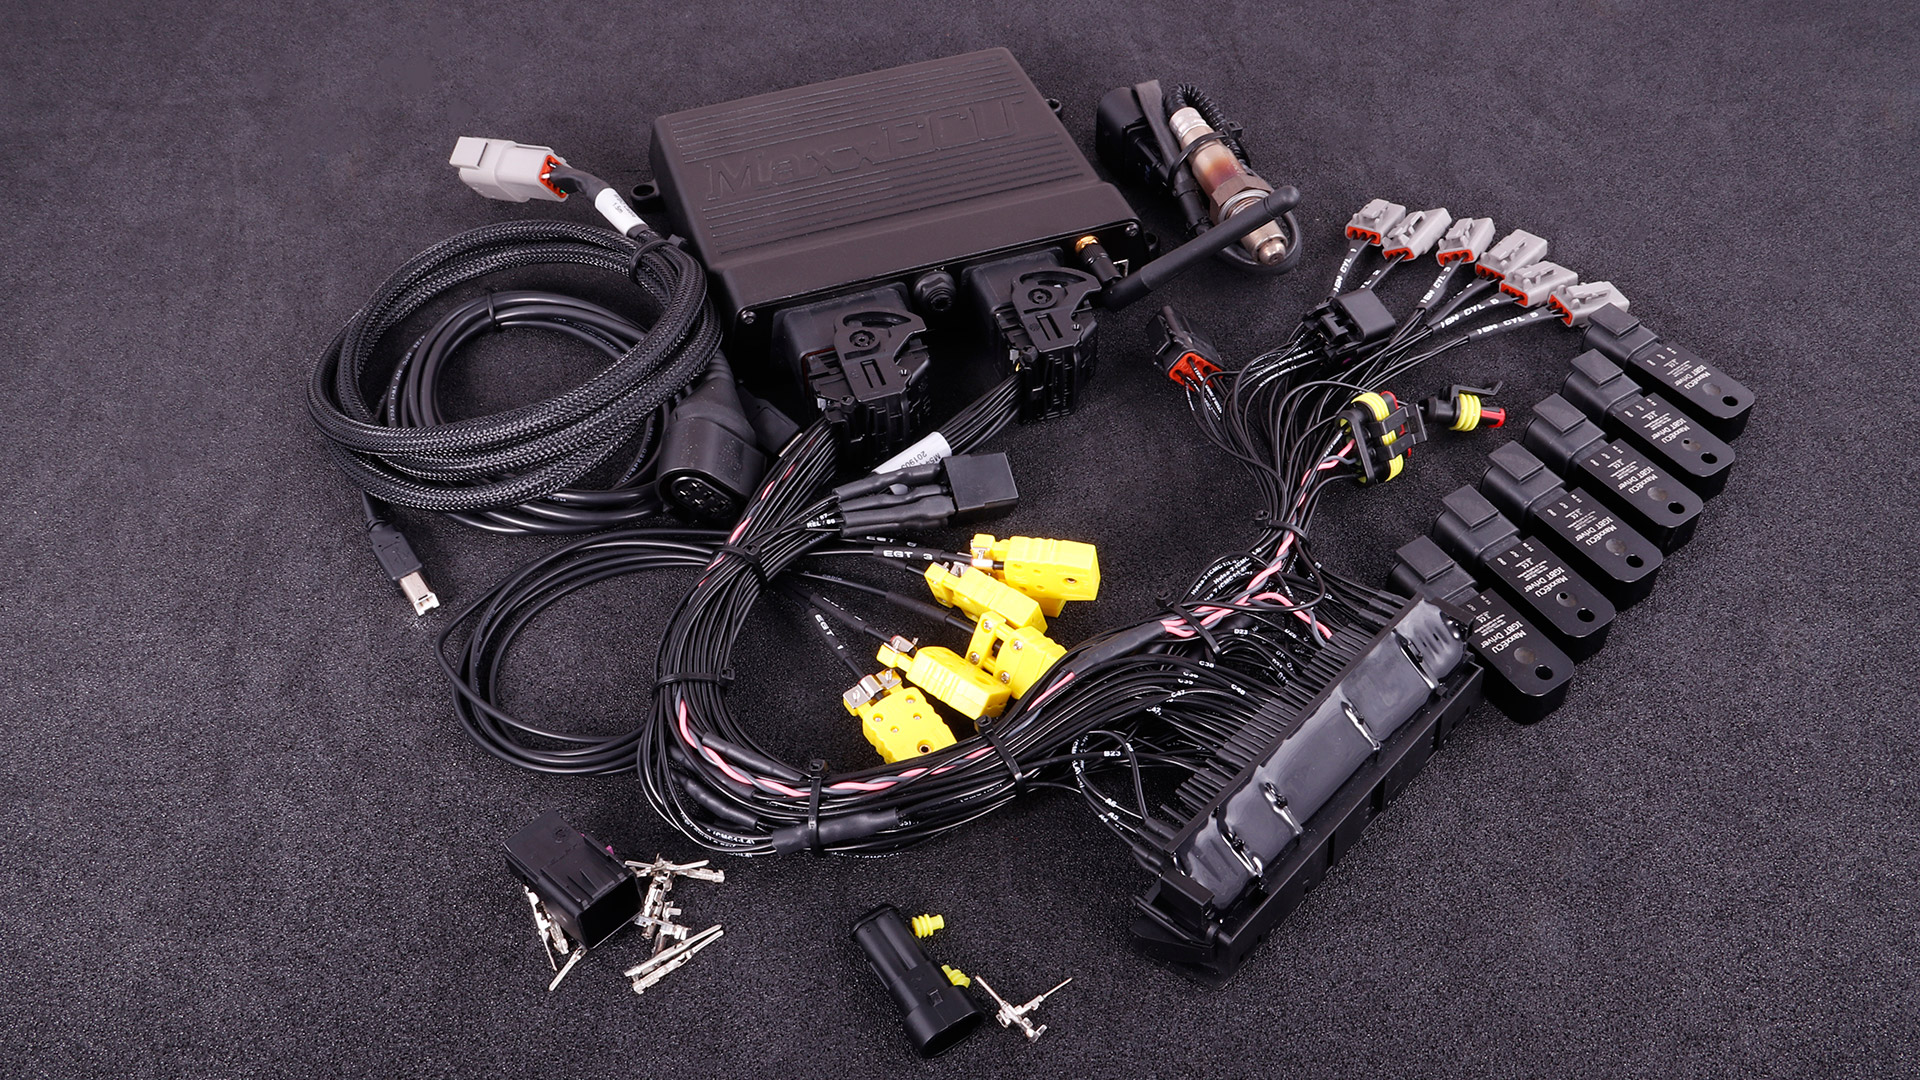 MaxxECU RACE plugin for BMW M54 complete kit with Bosch LSU 4.2 sensor, IGBT drivers and accessories